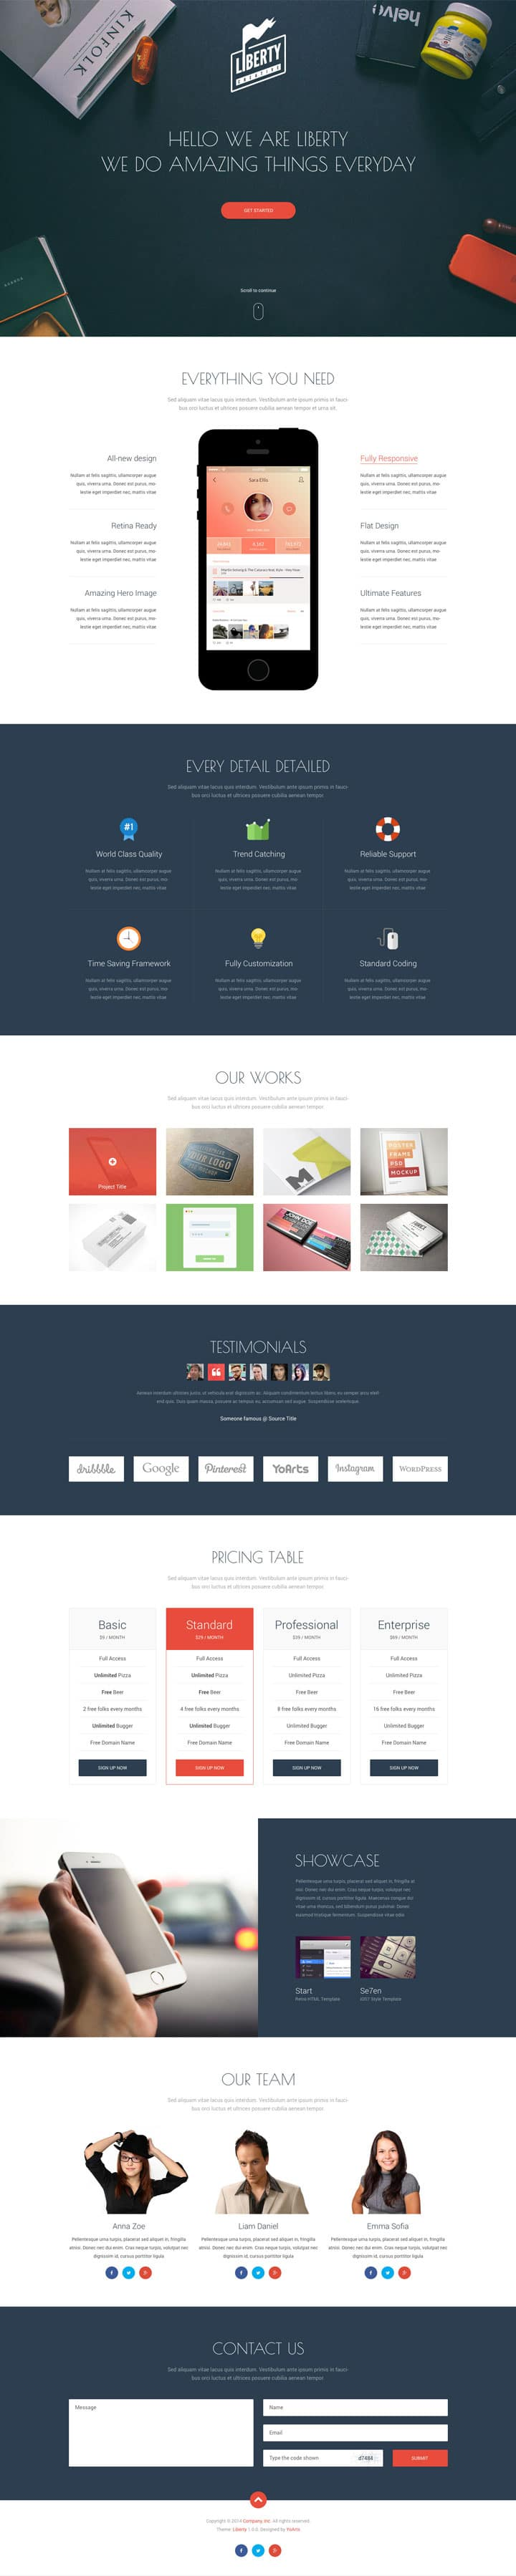 Liberty - Free One Page Template PSD